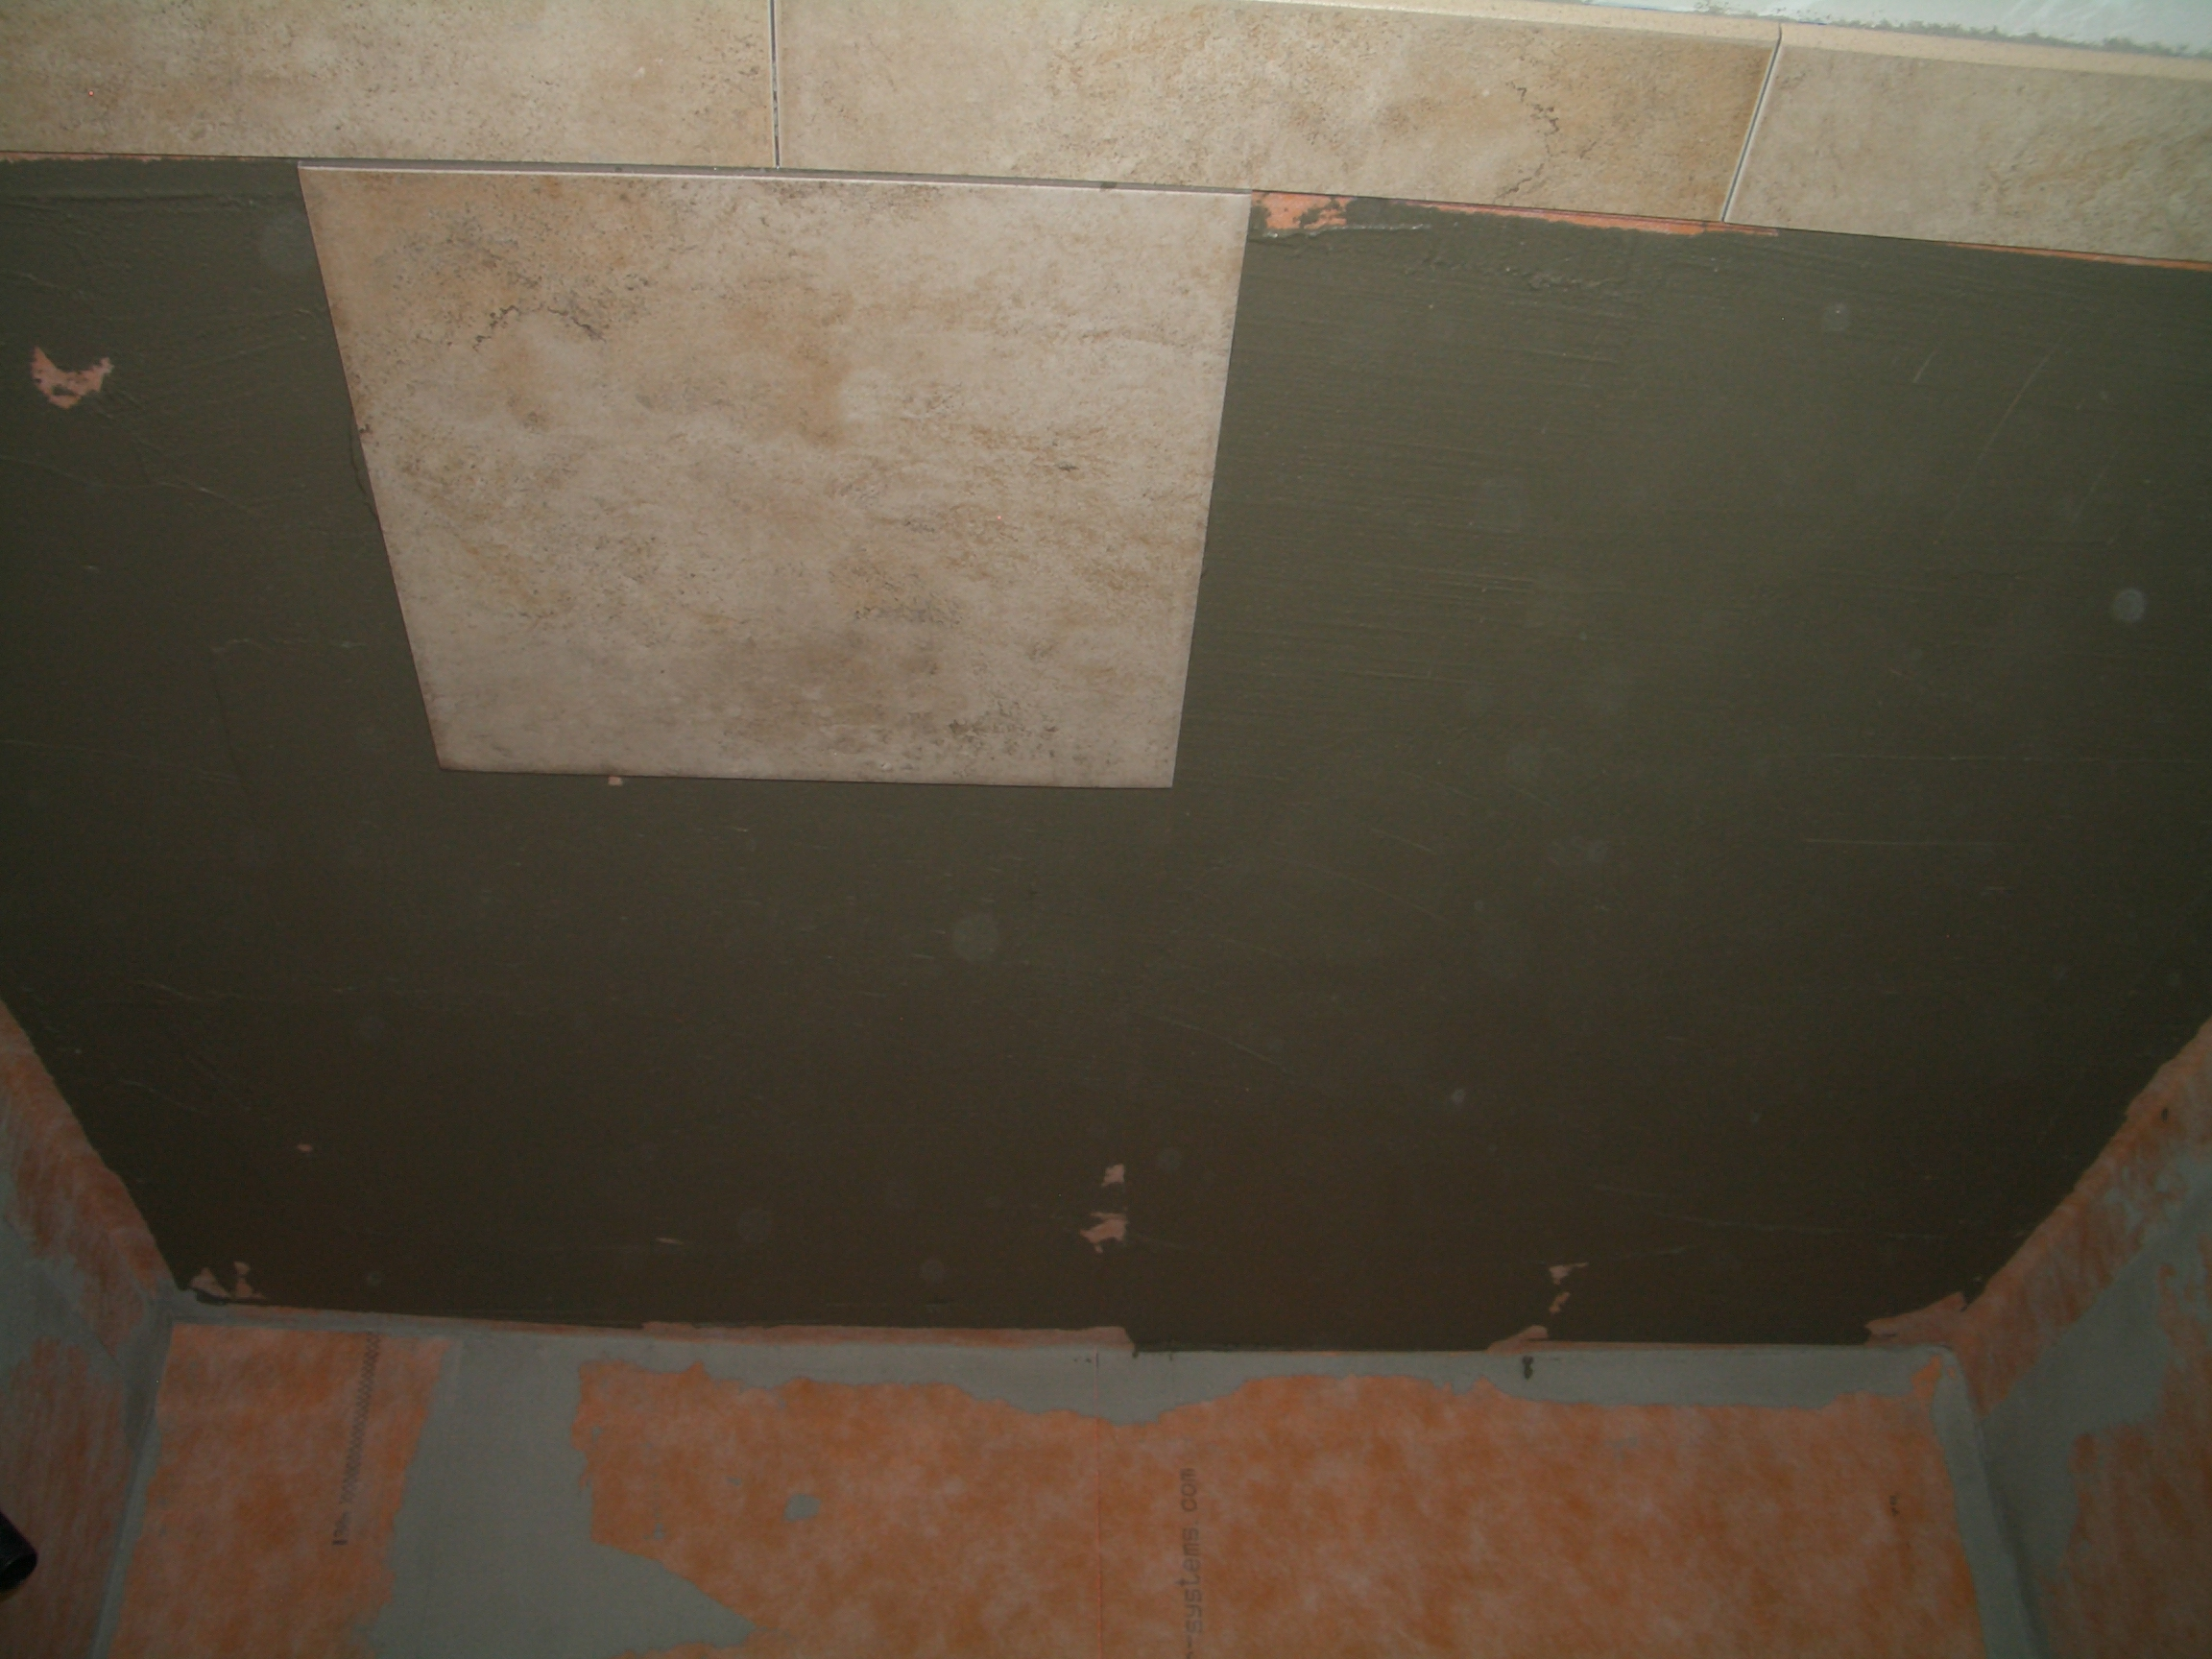 How to install tile on a shower ceiling Install tile shower